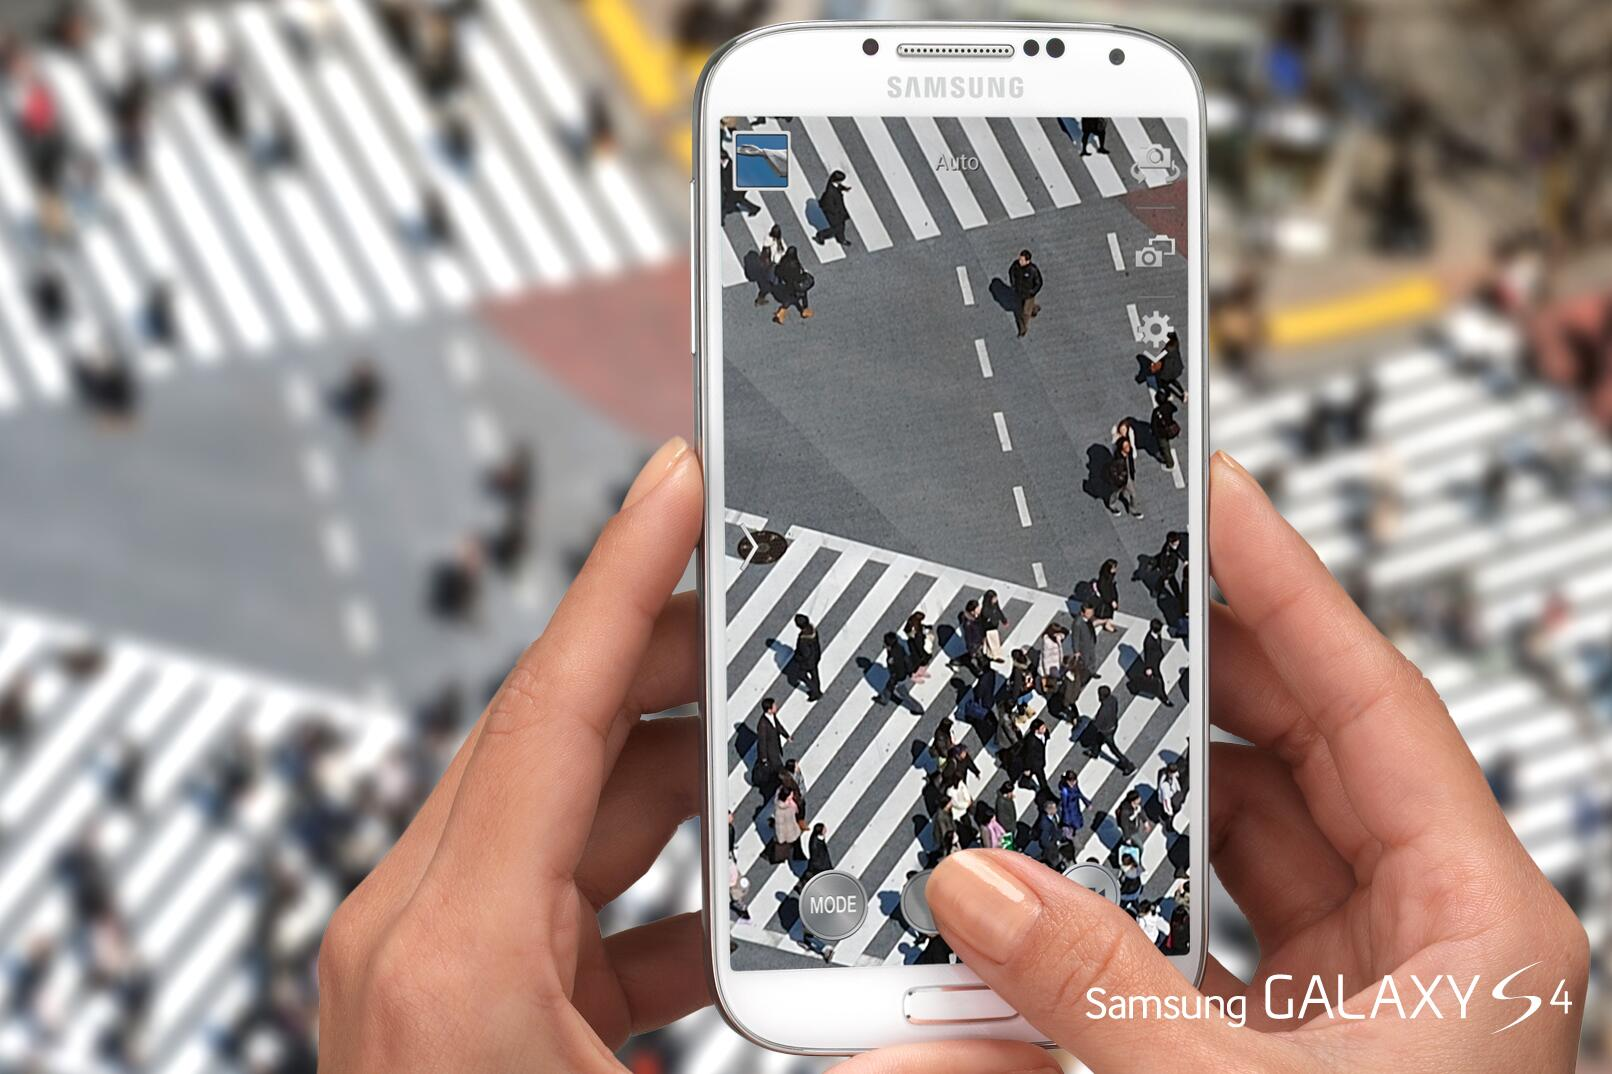 With @SamsungJapanfb on the final leg of our World Tour. Japan! Ready for the #GALAXYS4? http://t.co/jdrqDVDE6s